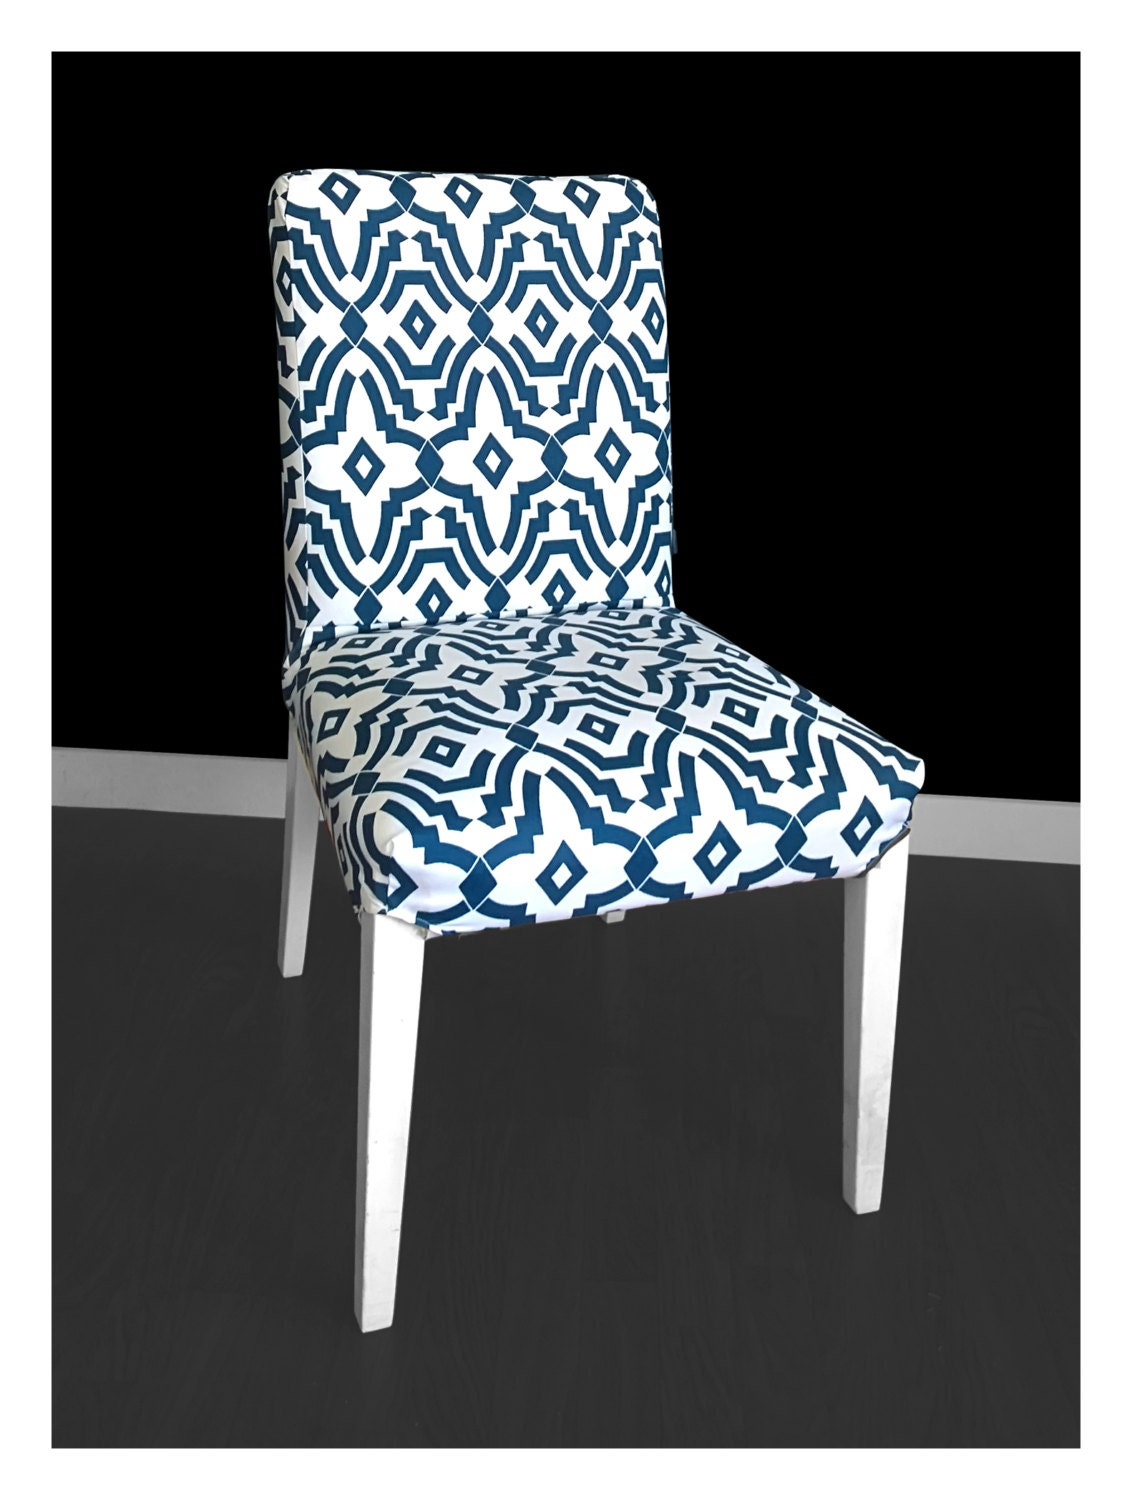 Blue Pattern IKEA HENRIKSDAL Dining Chair Cover : ilfullxfull10025966741d7f from www.etsy.com size 1132 x 1500 jpeg 207kB